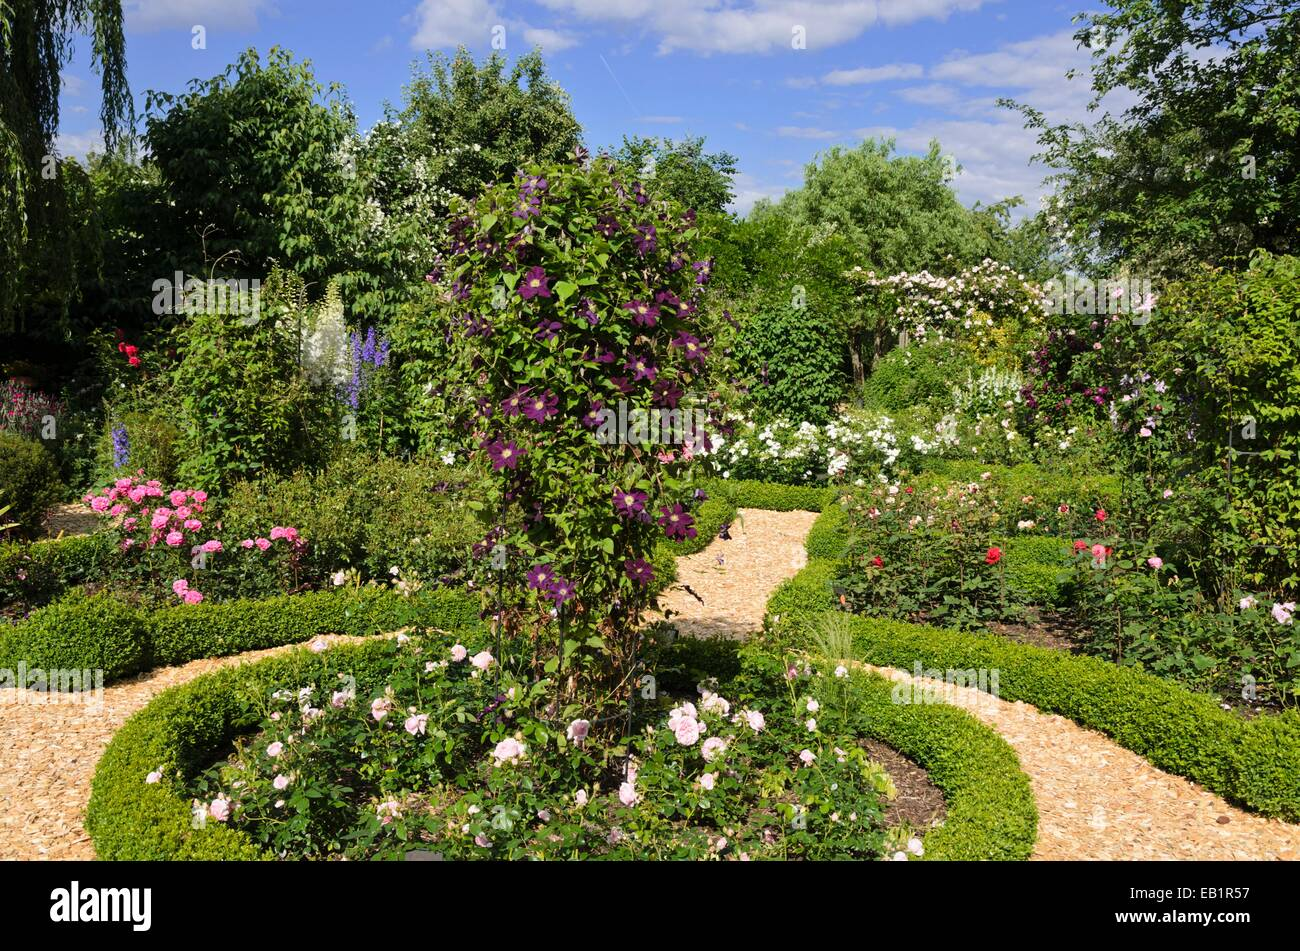 Clematis Clematis and roses Rosa in a rose garden Design